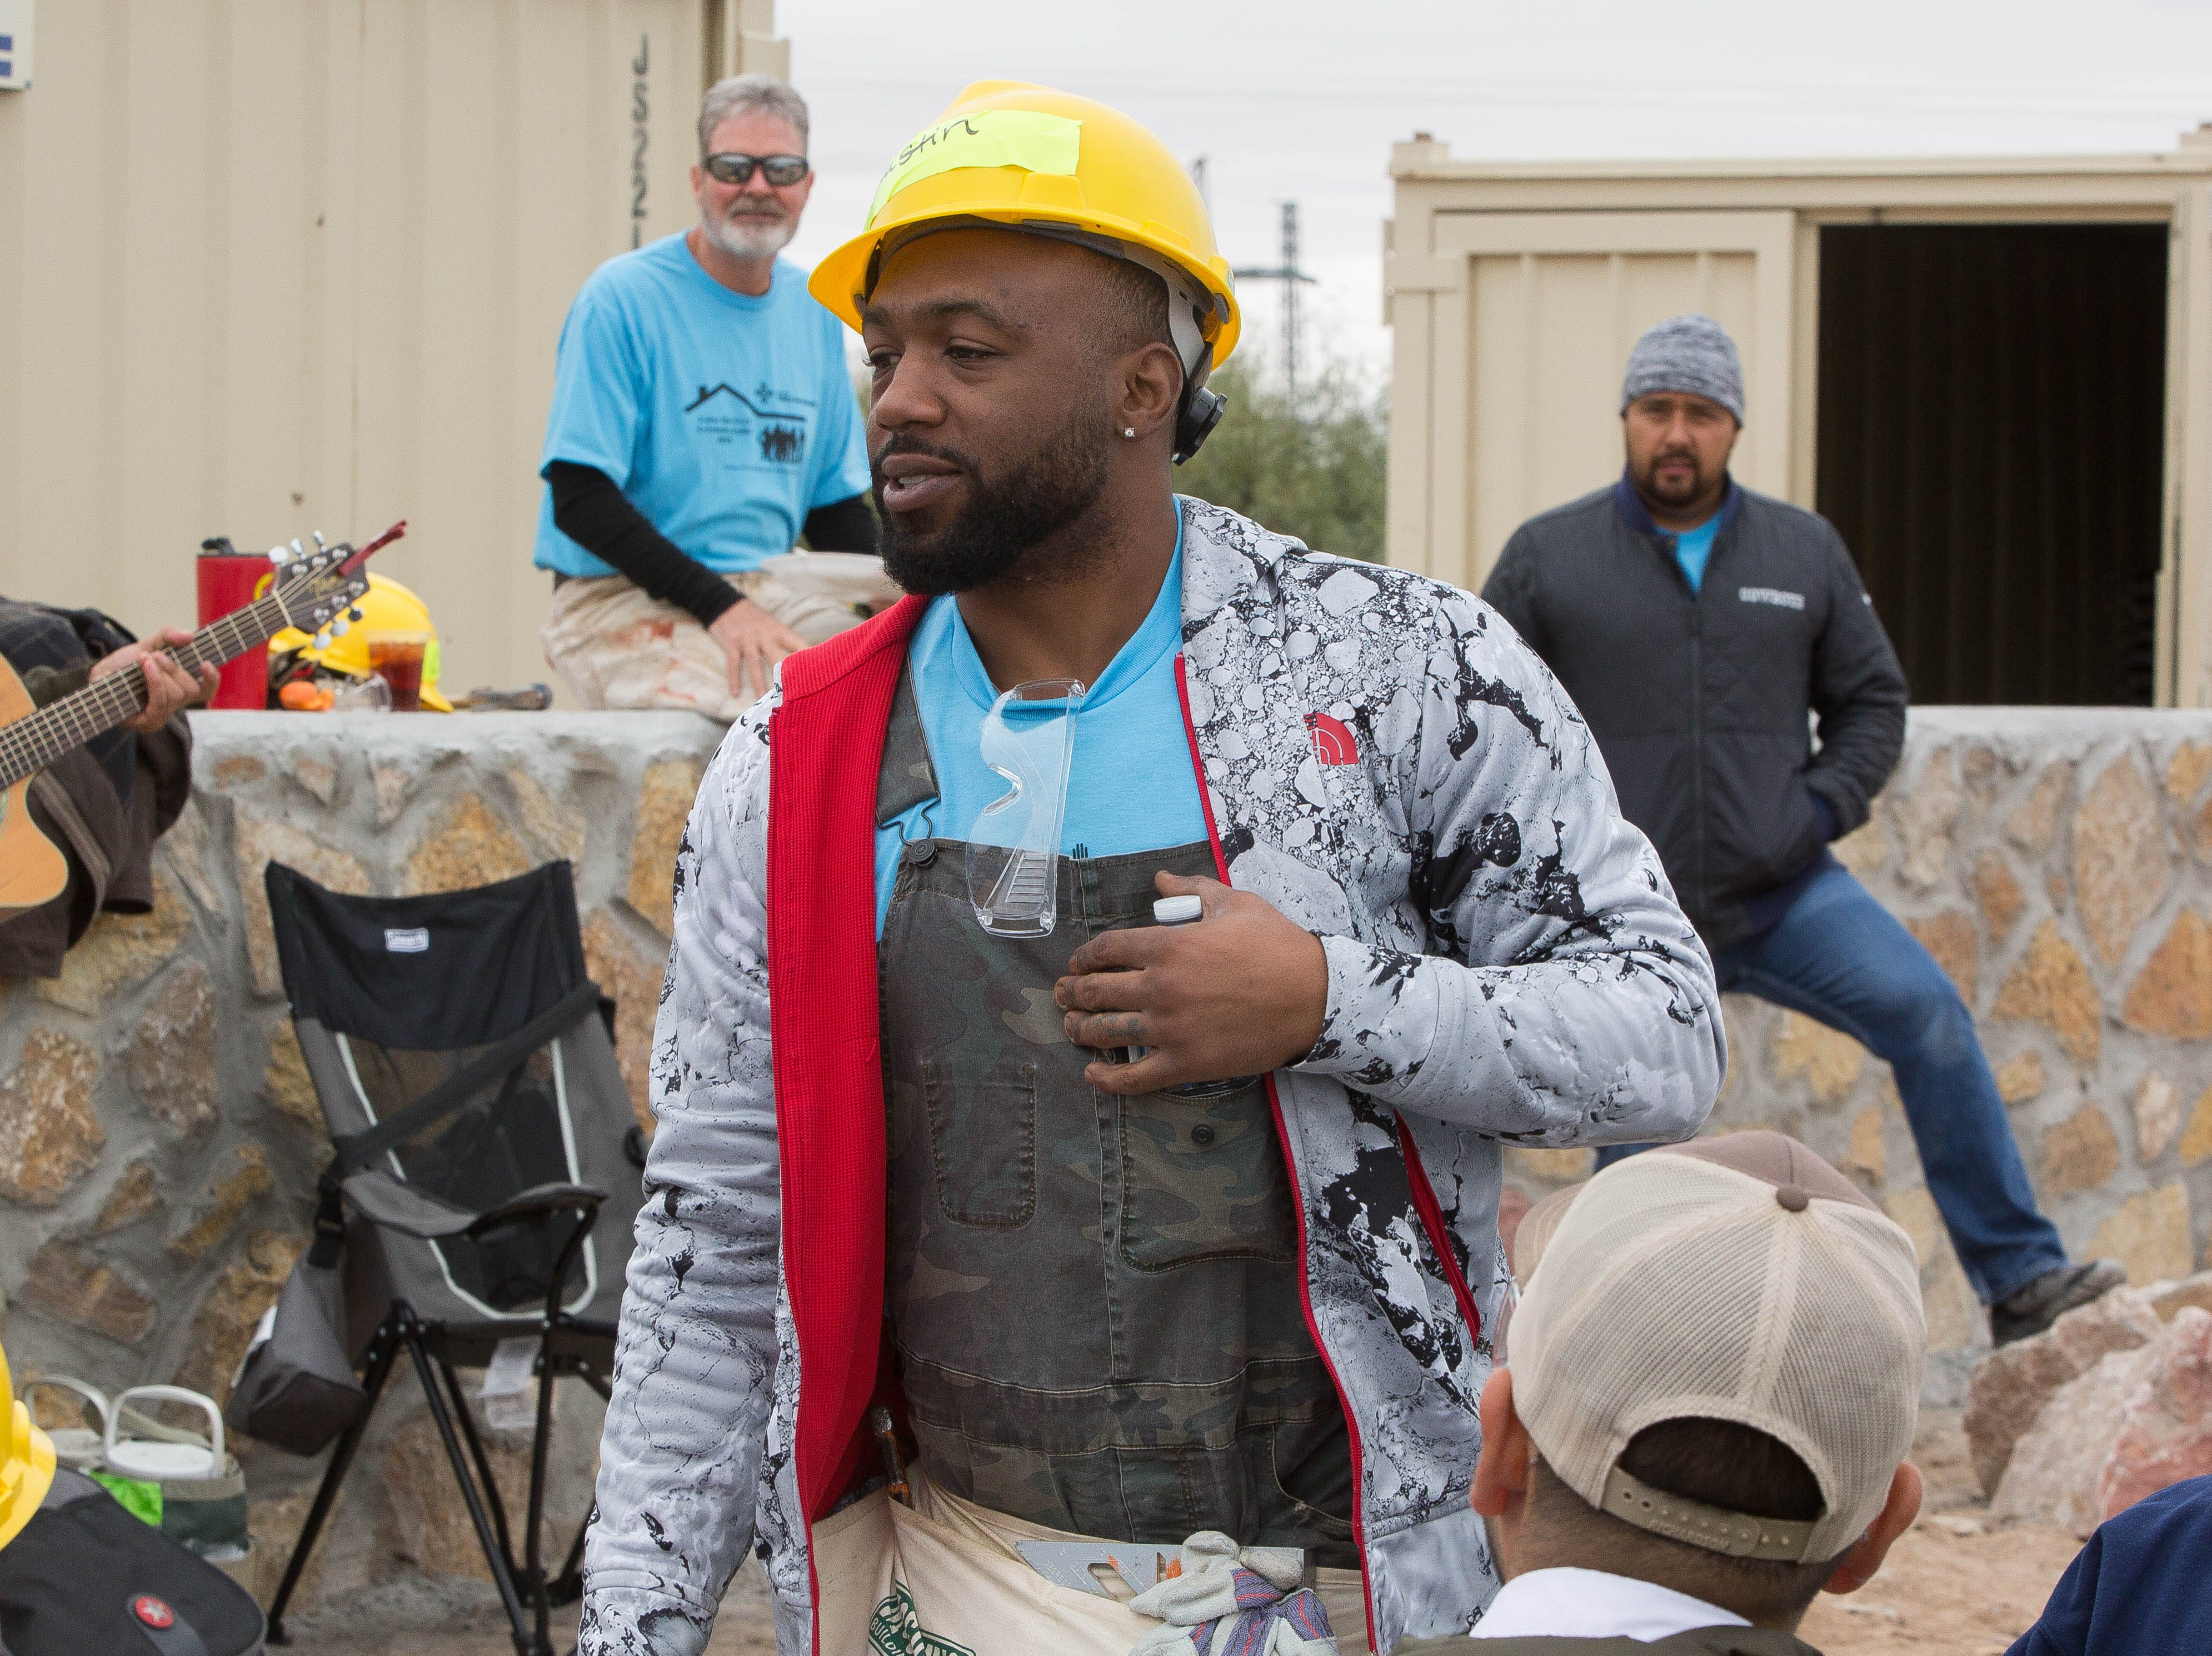 During the lunch break at the Habitat for Humanity build site at Aurora Star Court, Austin Trout, was introduced along with a few other local celebrities that Tok the time to volunteer and help build homes, Wednesday October 17, 2018.